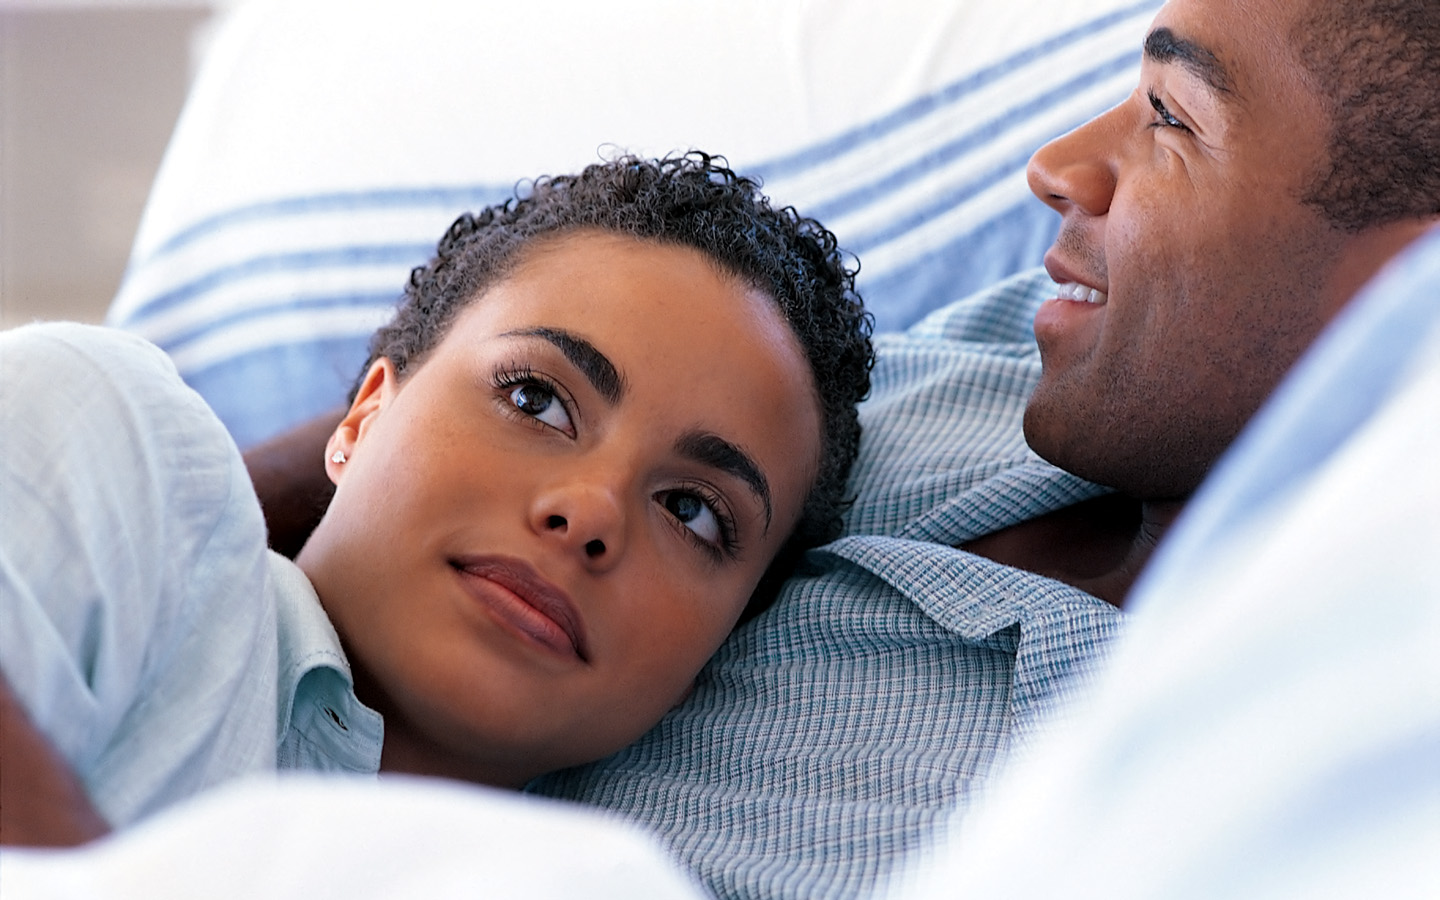 The San Francisco Marriage and Couples Center offers couples counseling for couples who are in distress and would like to reignite the spark.